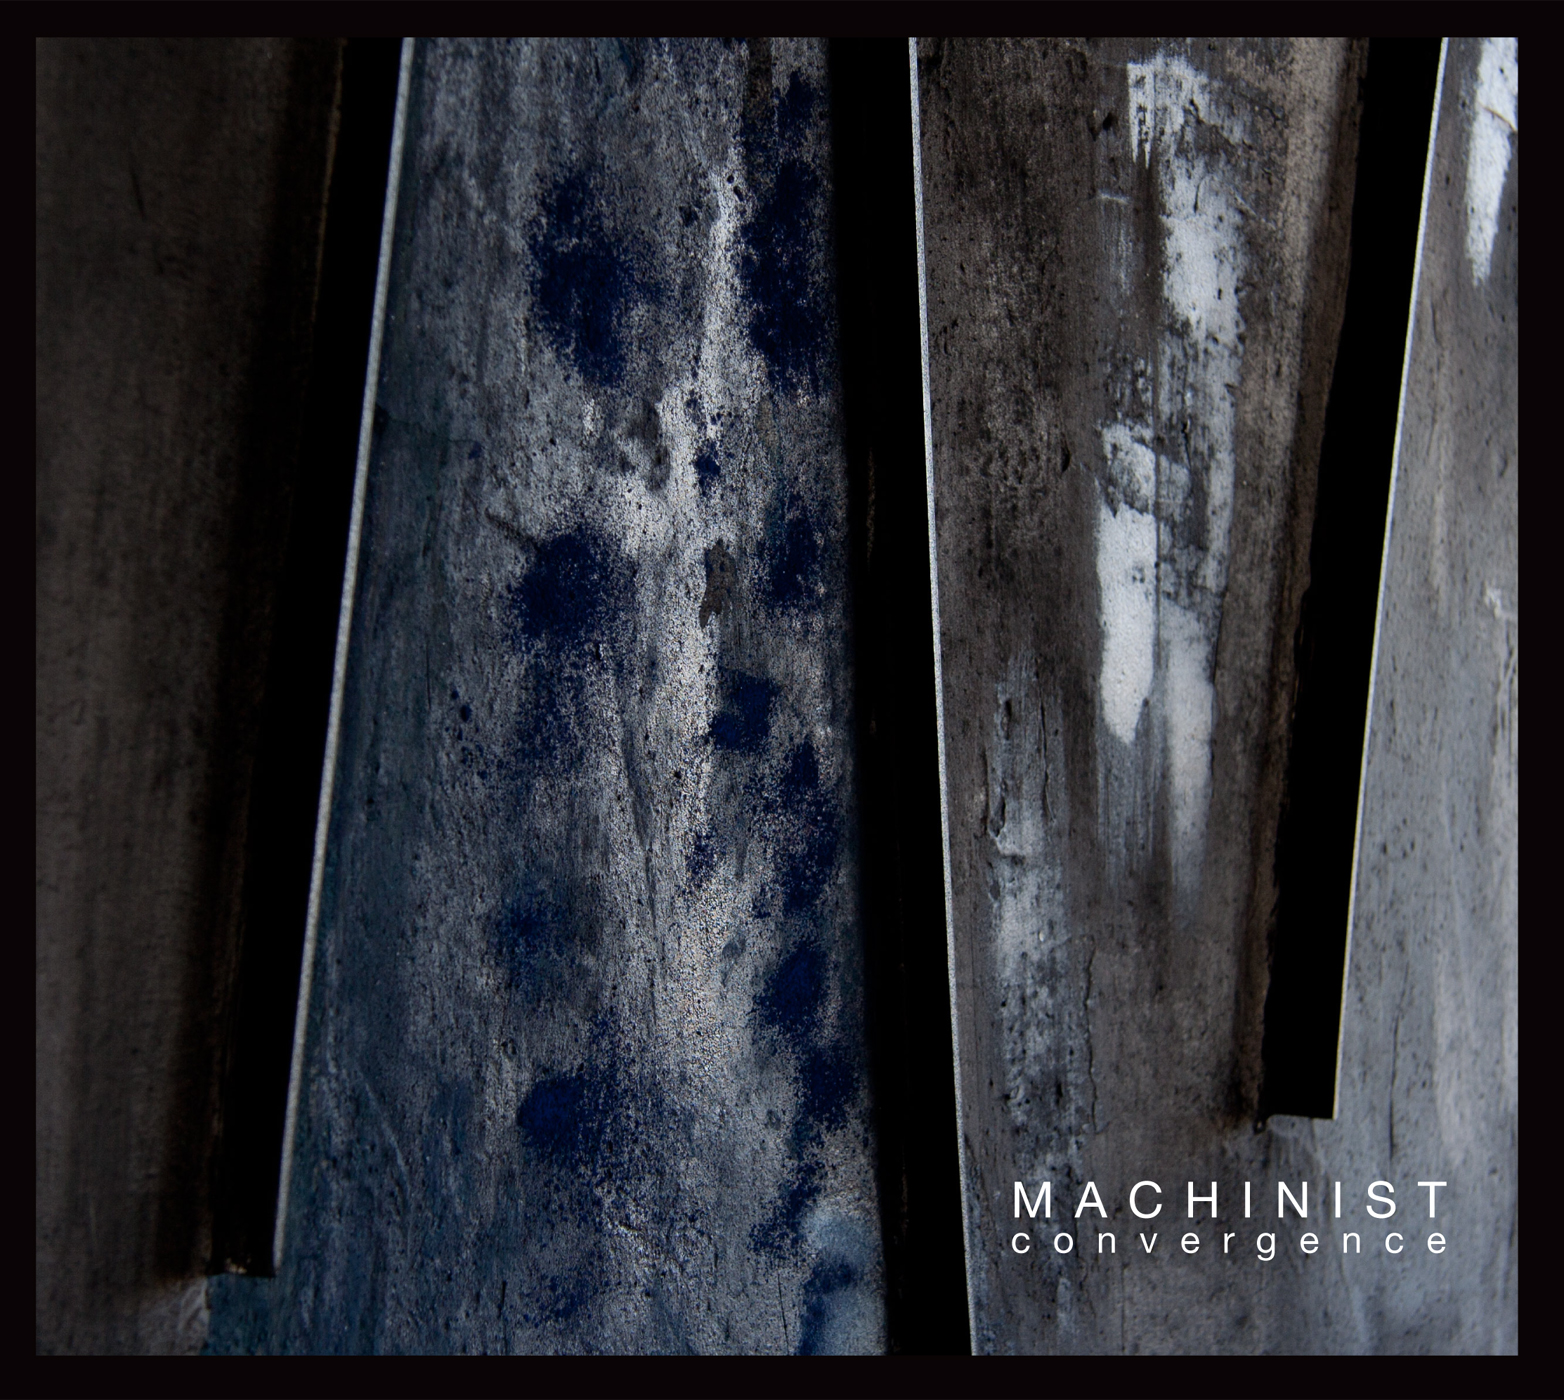 nm061: machinist - convergence